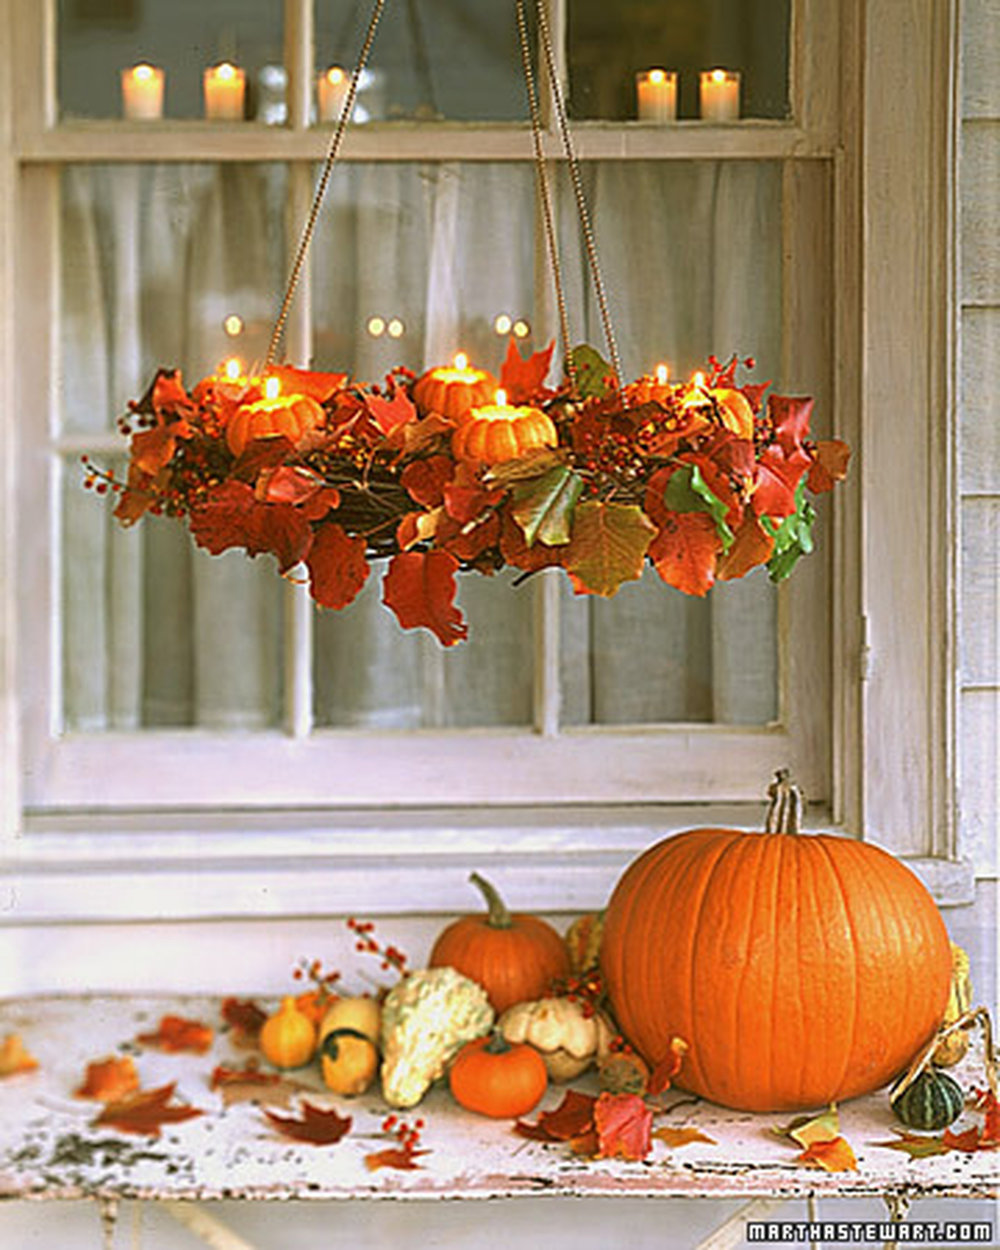 Wreath hanger & pumpkins from Martha Stewart Living | asavvylifestyle.com